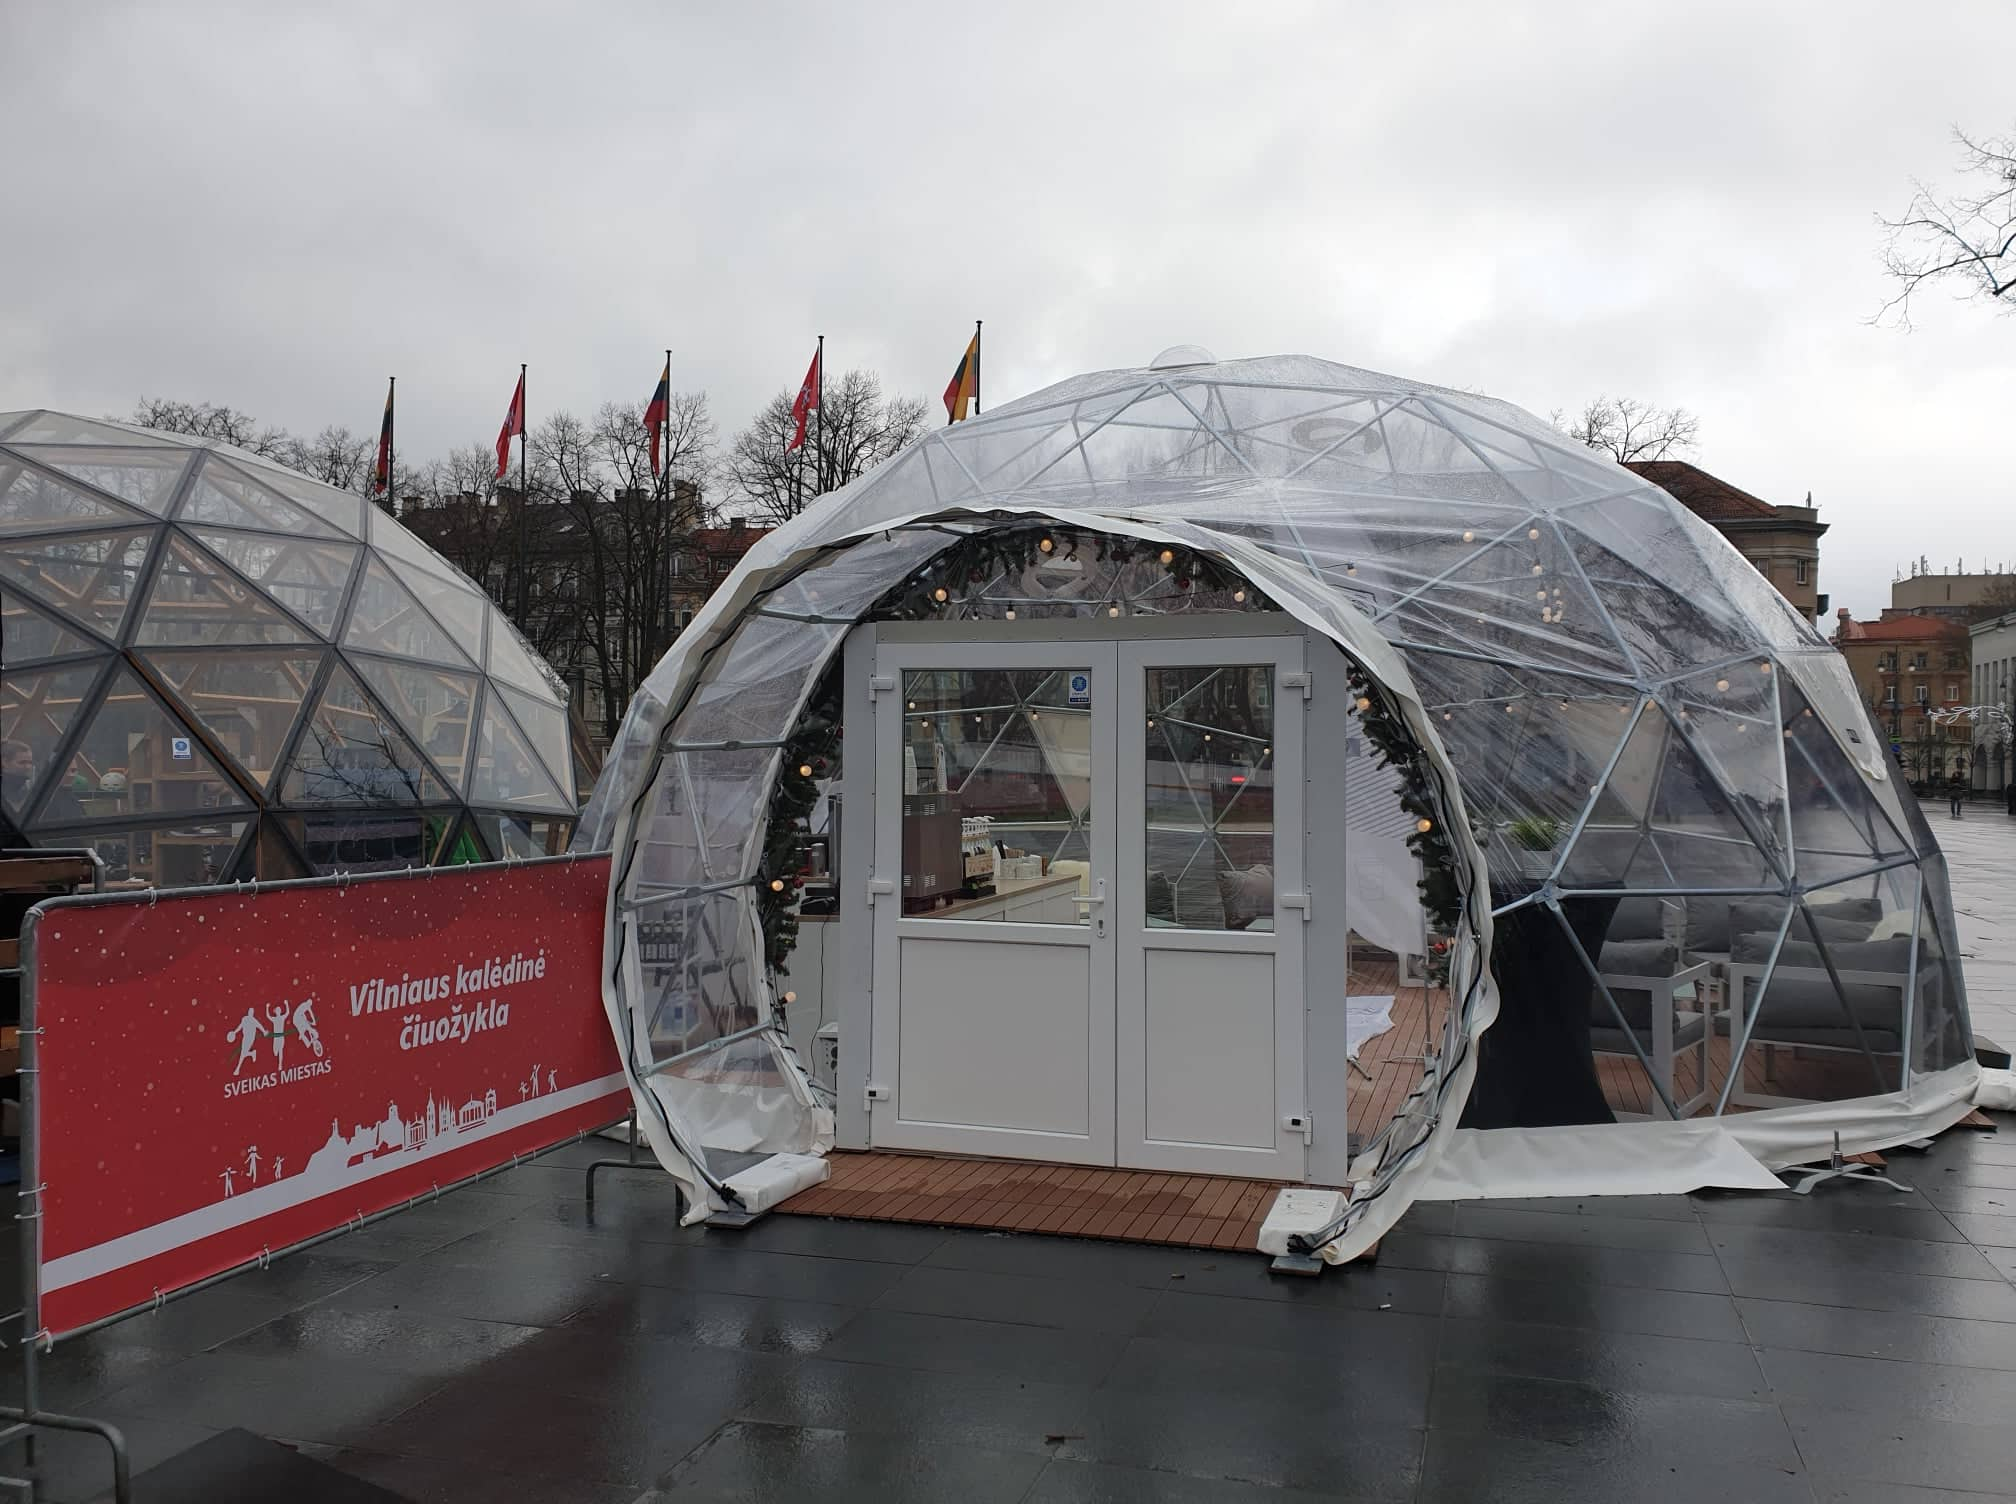 50m² Panoramic Bar Glamping Dome Ø8m | Ice rink in Lukiškės Square, Vilnius